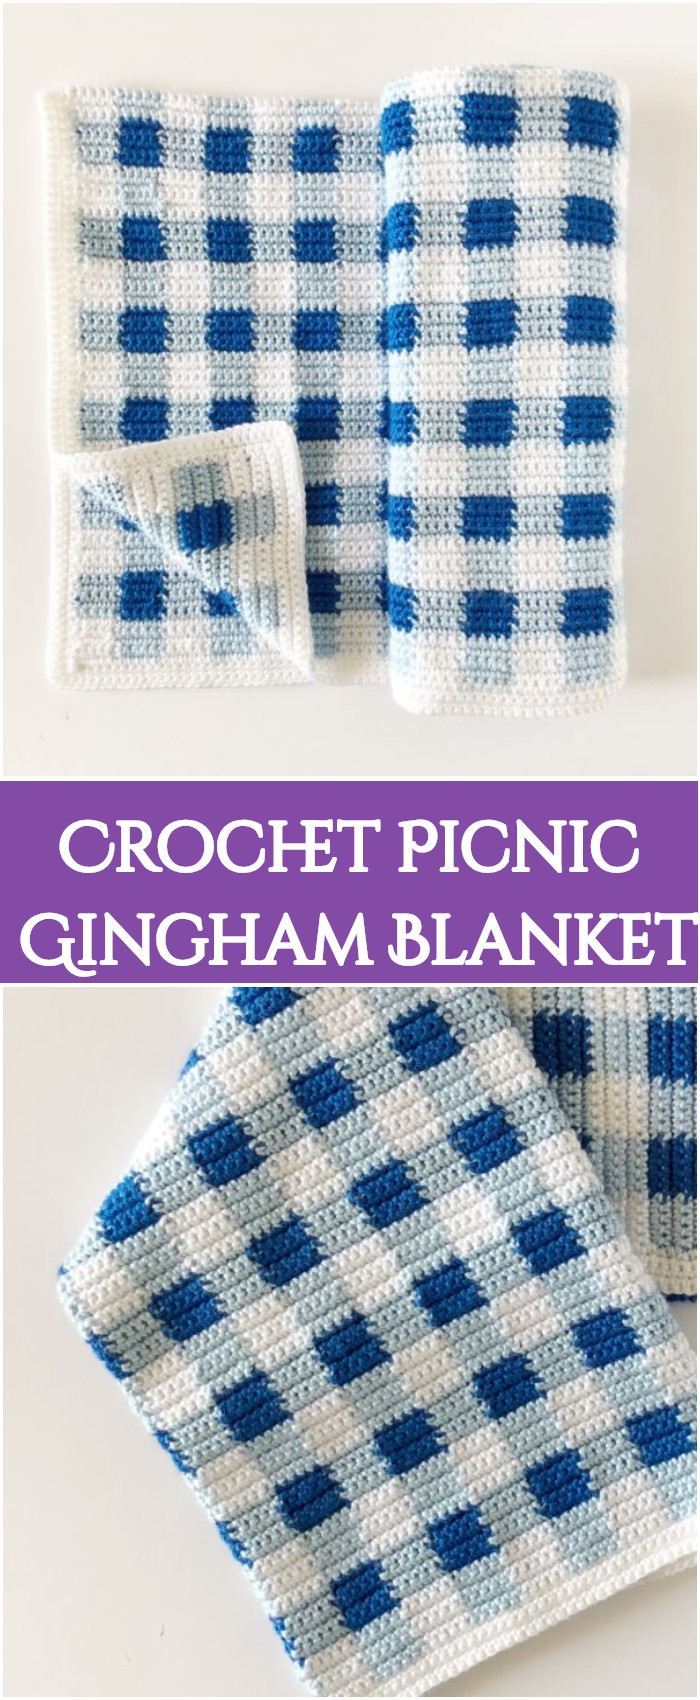 Crochet Picnic Gingham Blanket -All of these free crochet blanket patterns are so much beautiful and really easy. Most of them are so much less time-consuming and even they can be completed in less than one week. #Blankets #crochetblanket #crochetblanketpatterns #freecrochetblanketpattern #freecrochetblanket